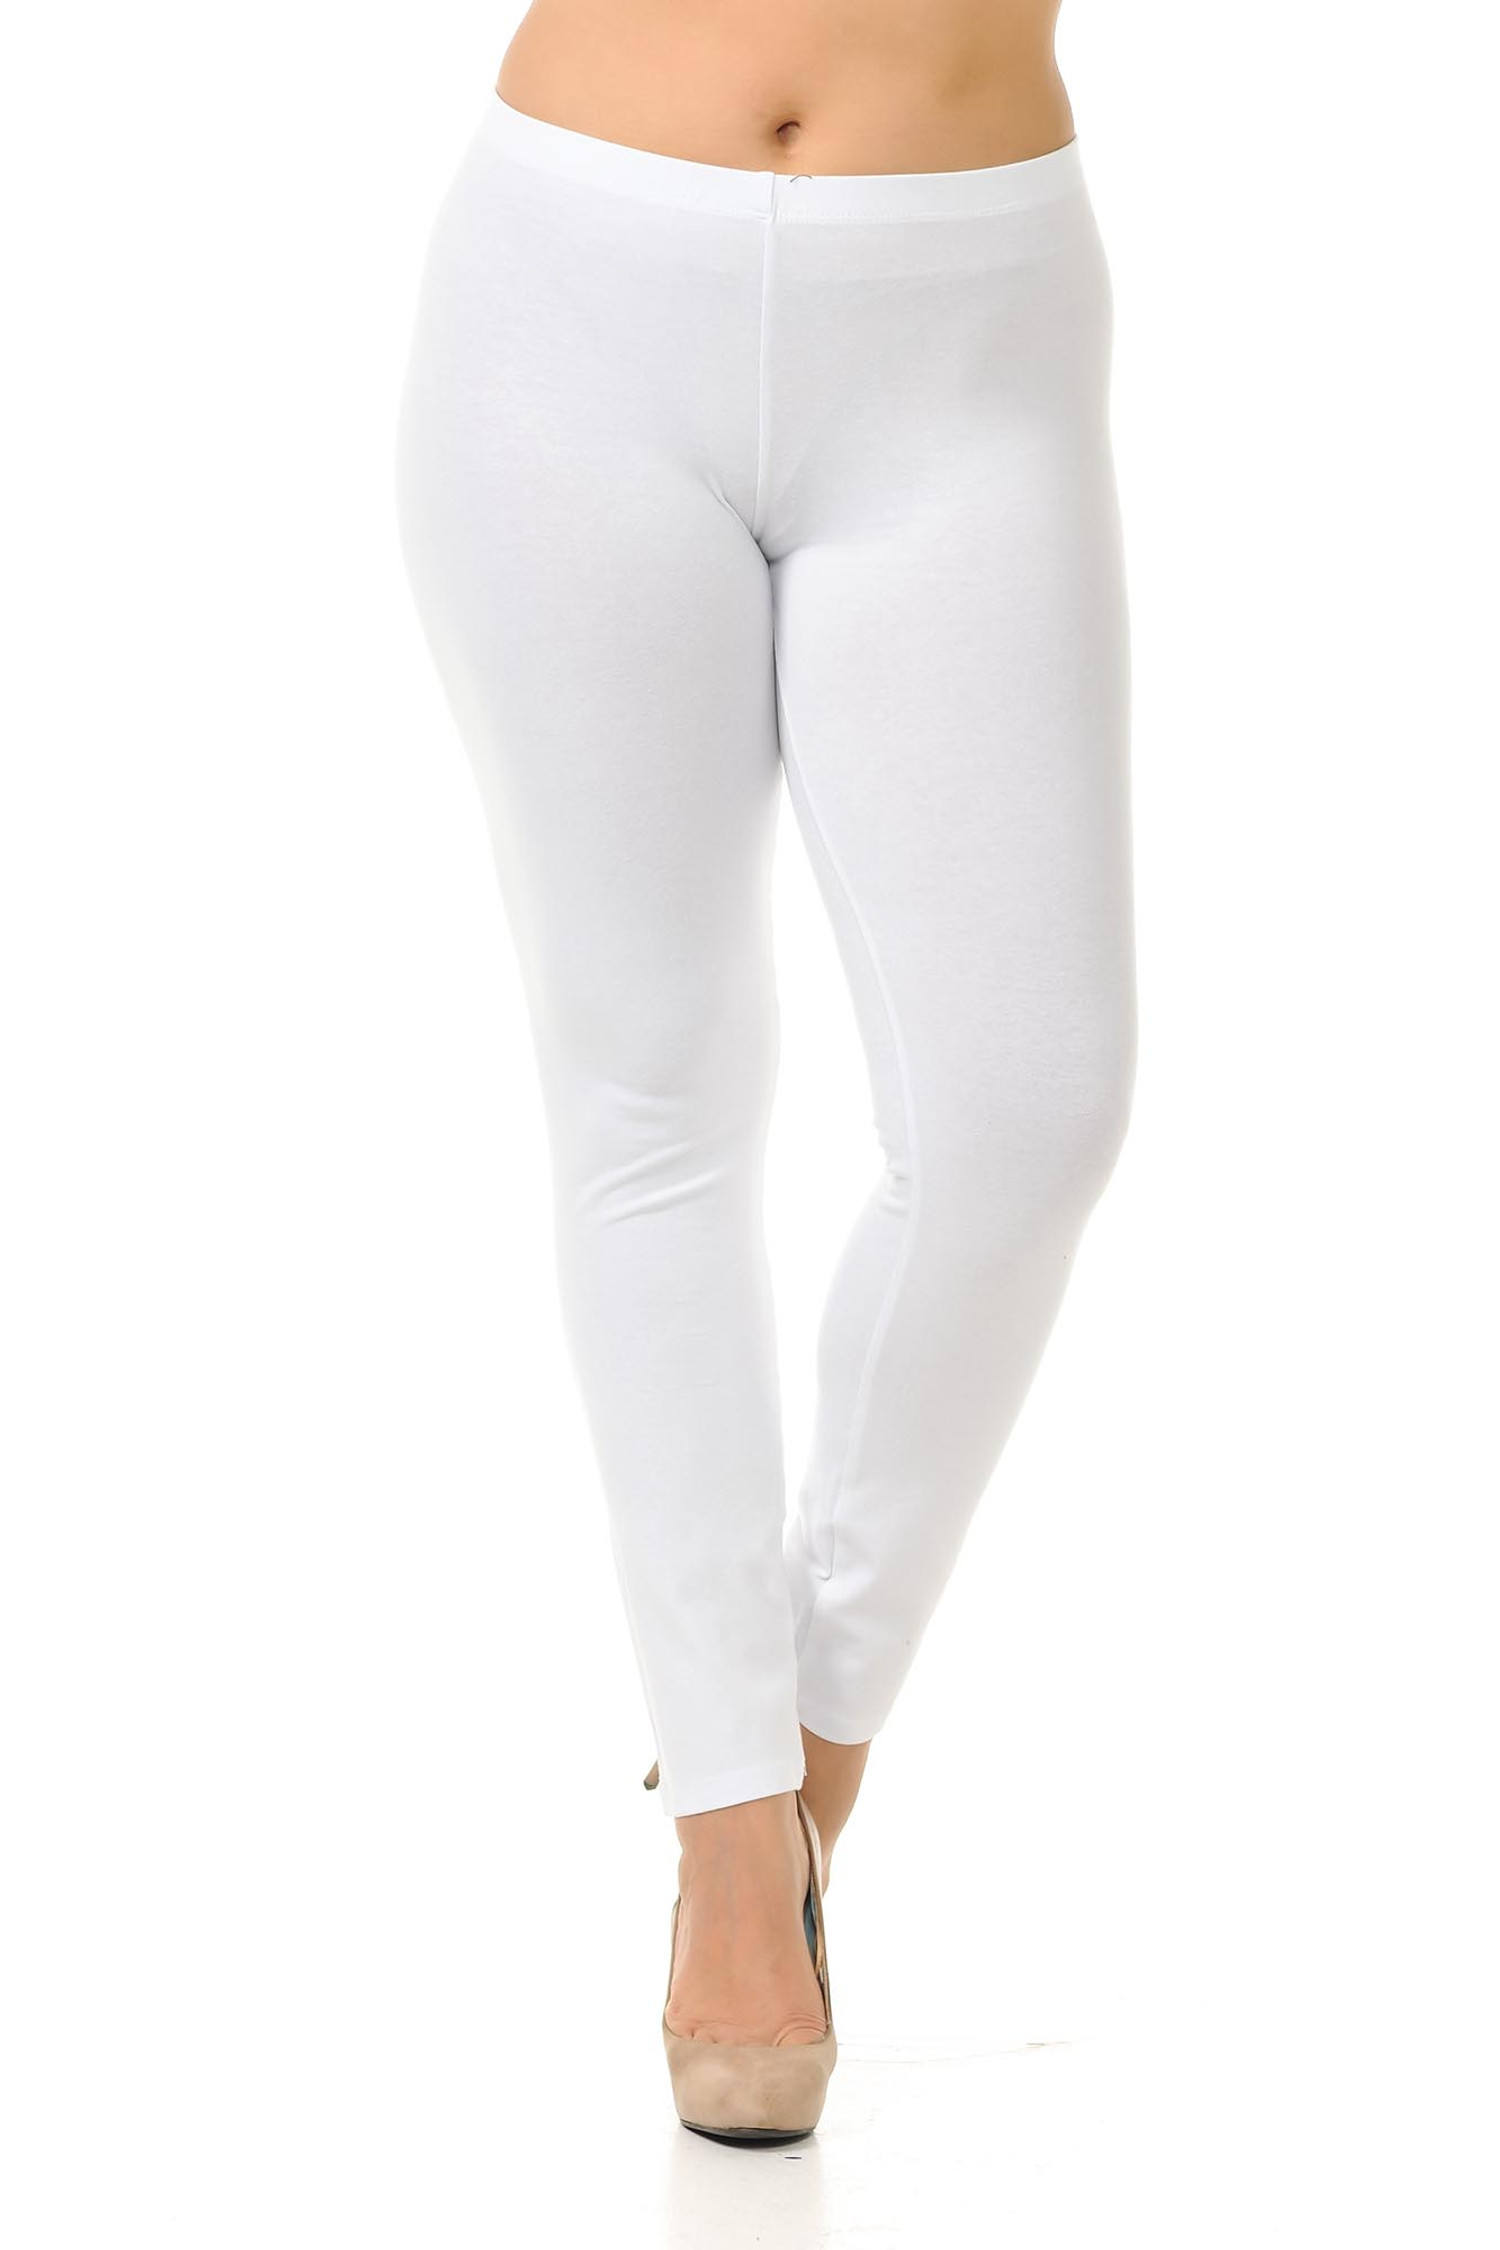 Front view image of white full length plus size USA cotton leggings.